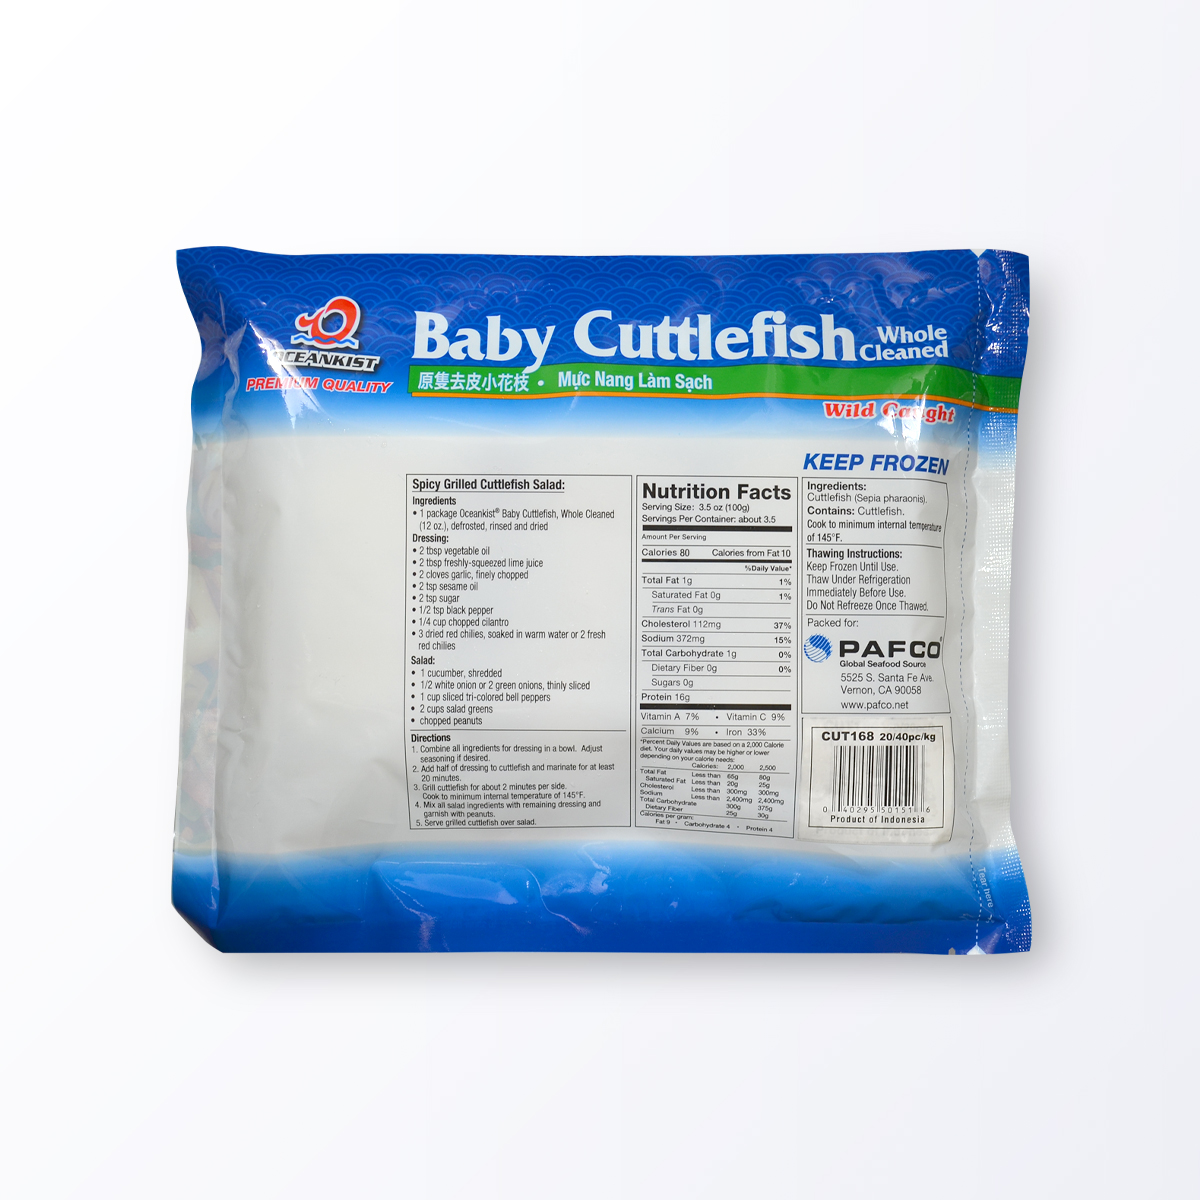 CUT168-Cuttlefish-Baby-Whole-Cleaned-back.jpg